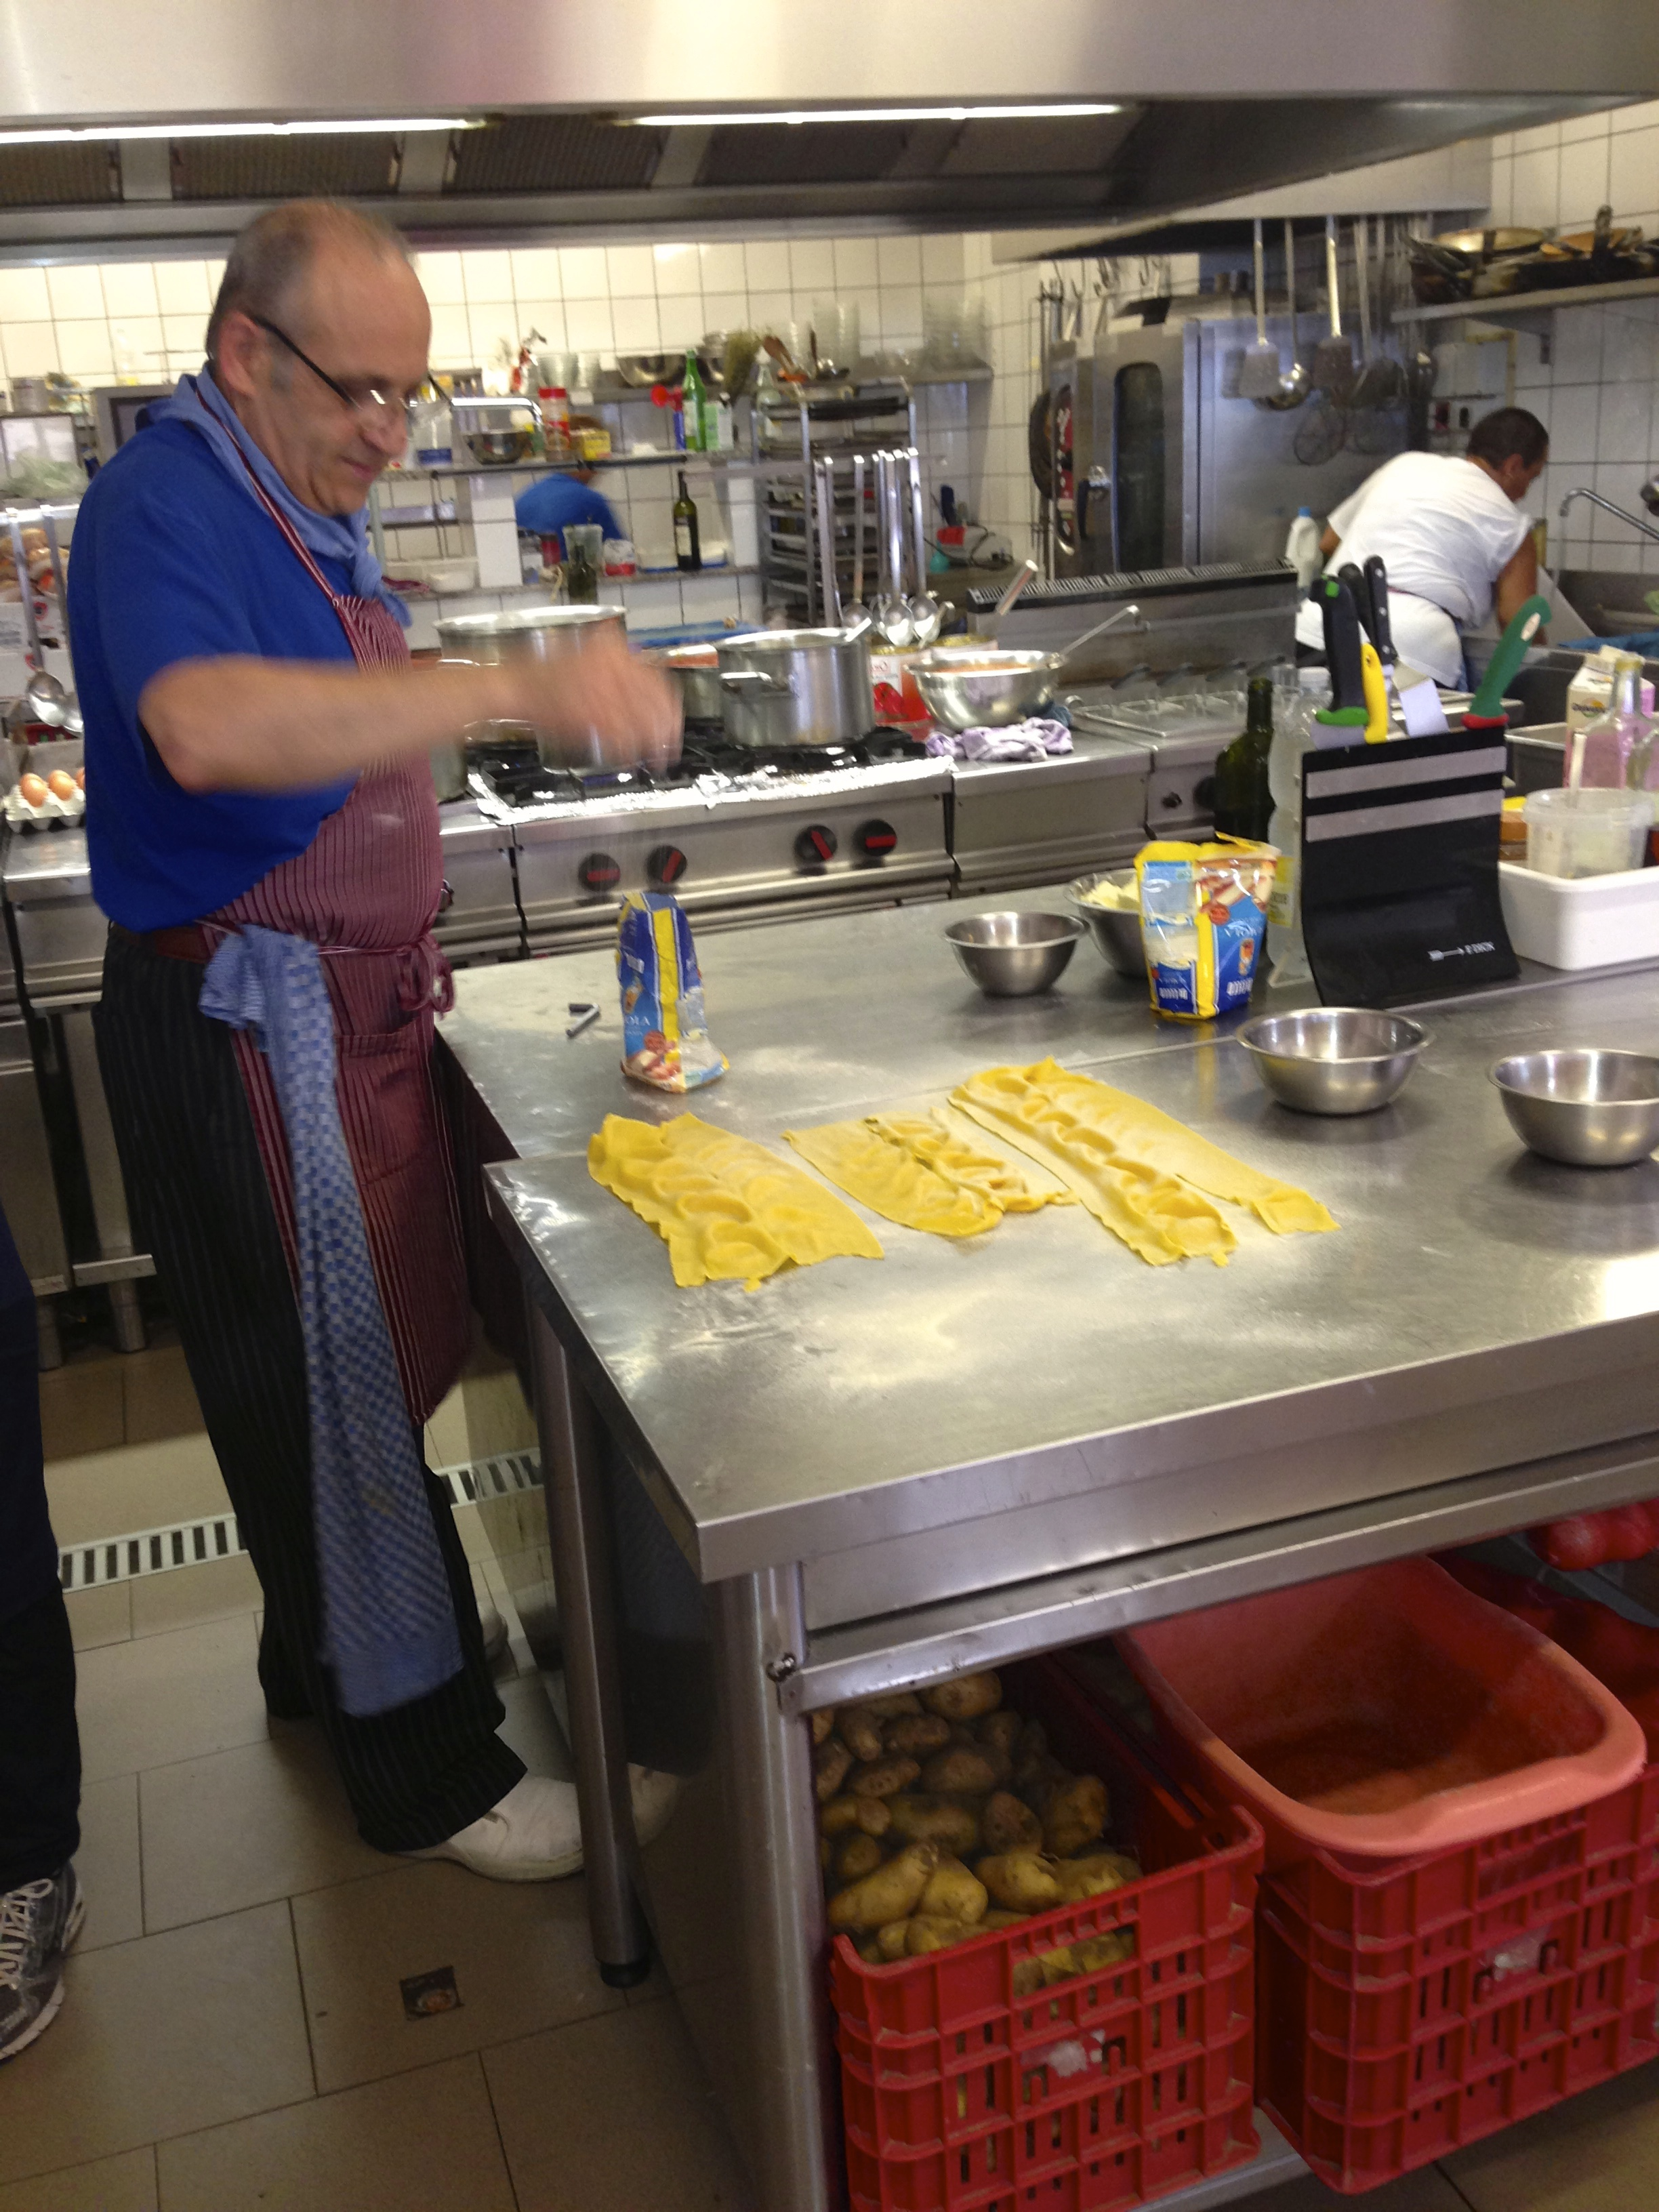 Matteo preparing some homemade pasta.